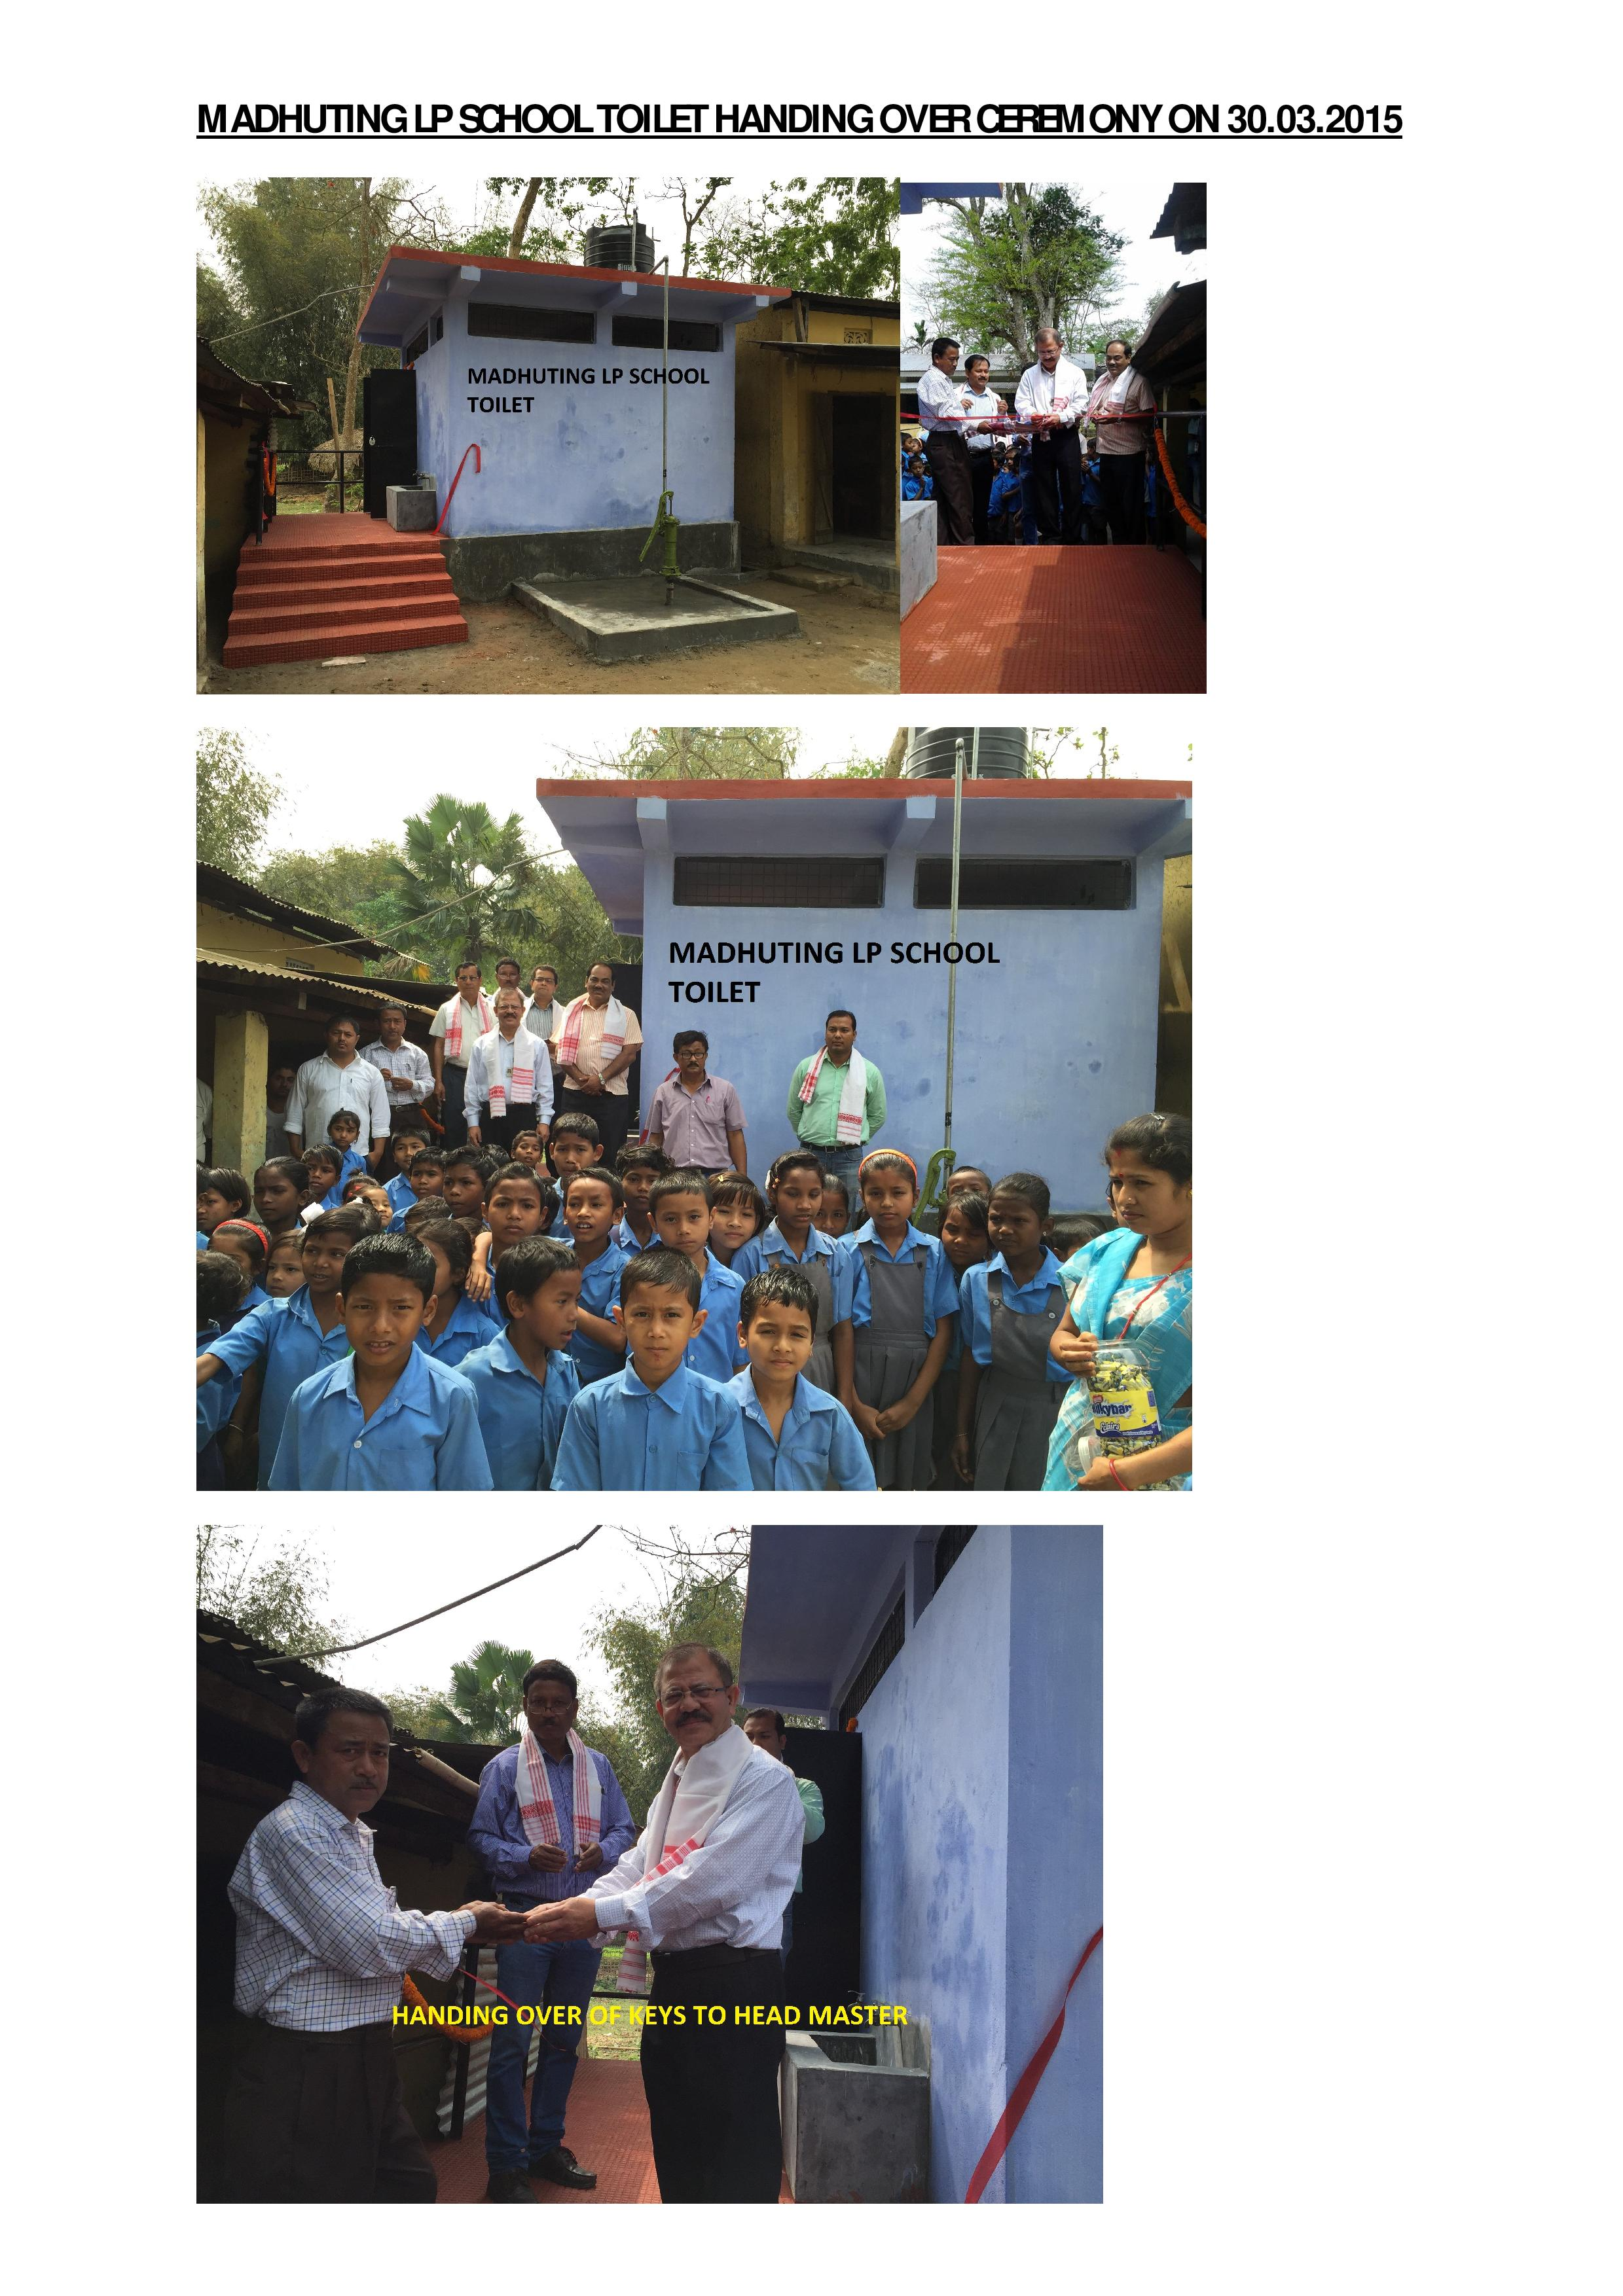 MADHUTING LP SCHOOL TOILET HANDING OVER CEREMONY ON 30.03.2015